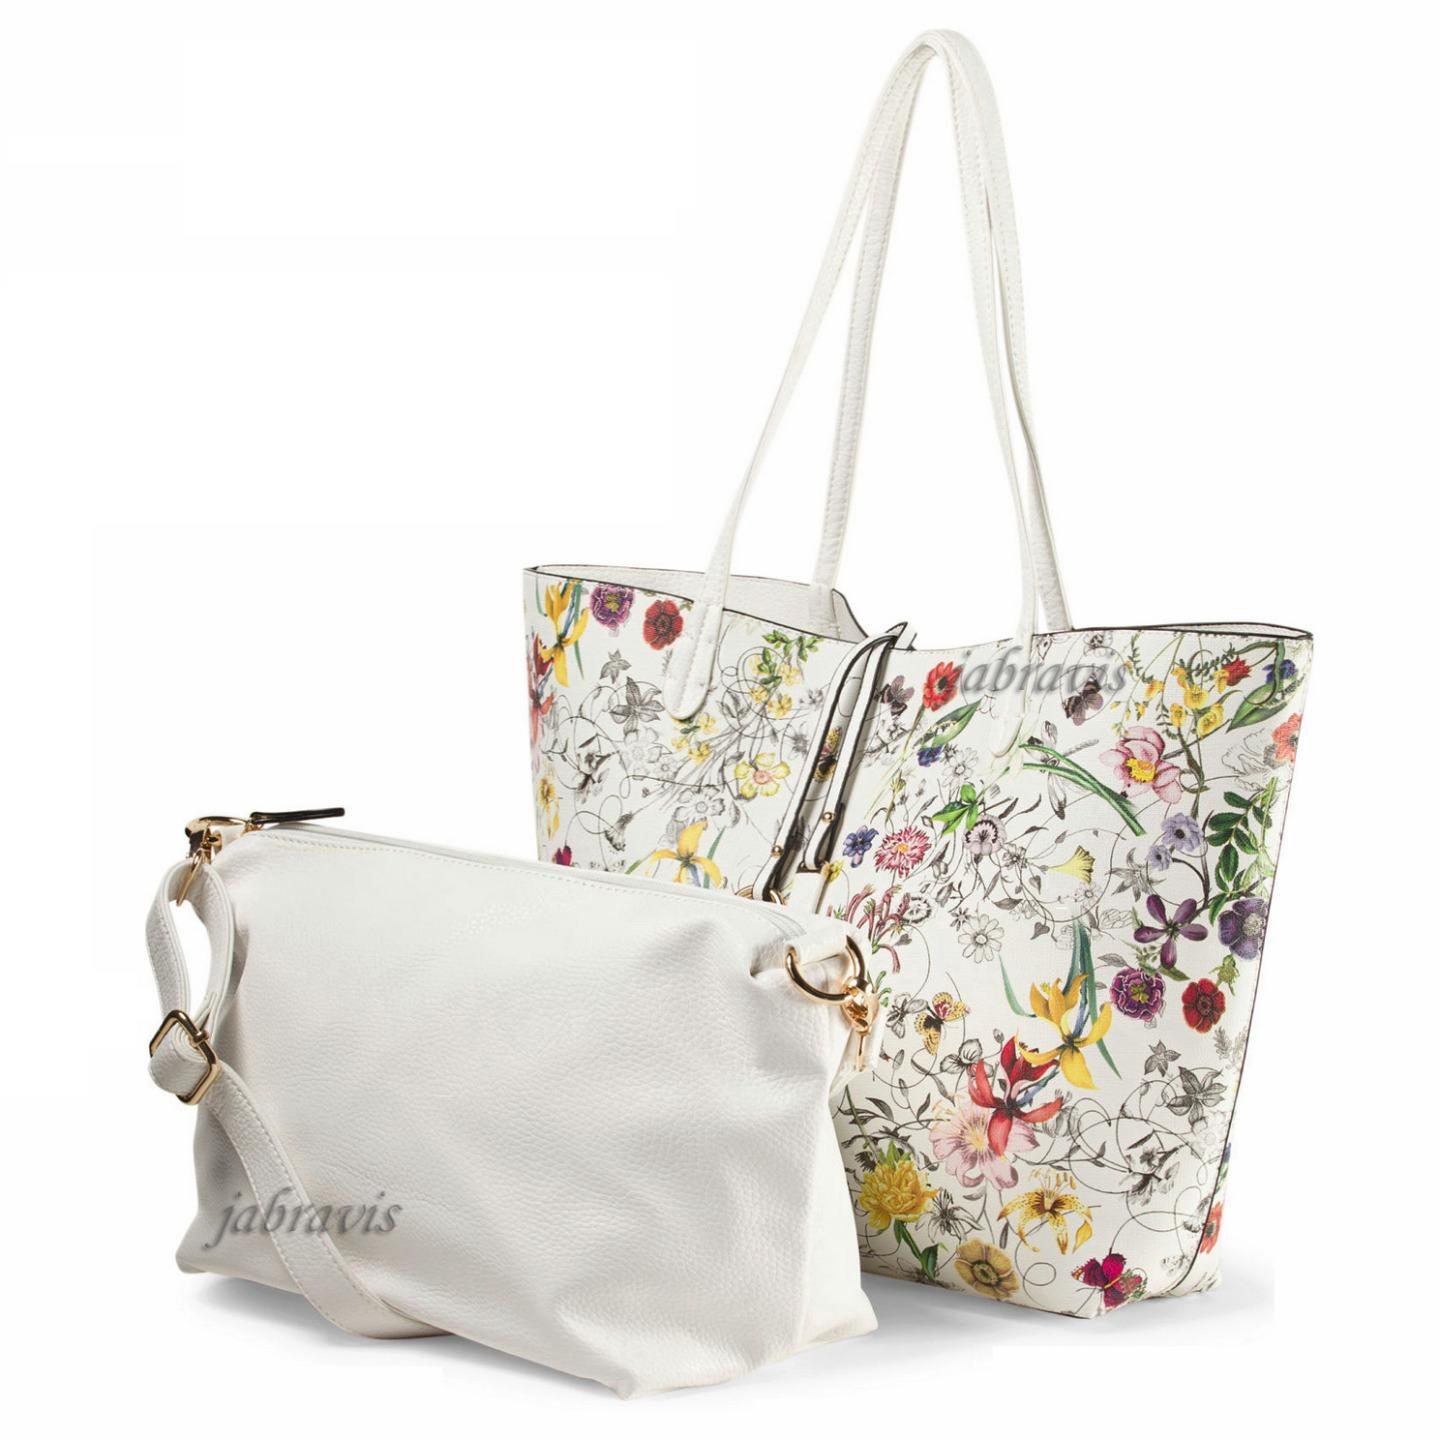 Imoshion Floral Saffiano Texture Giada 2 Pc Reversible 3